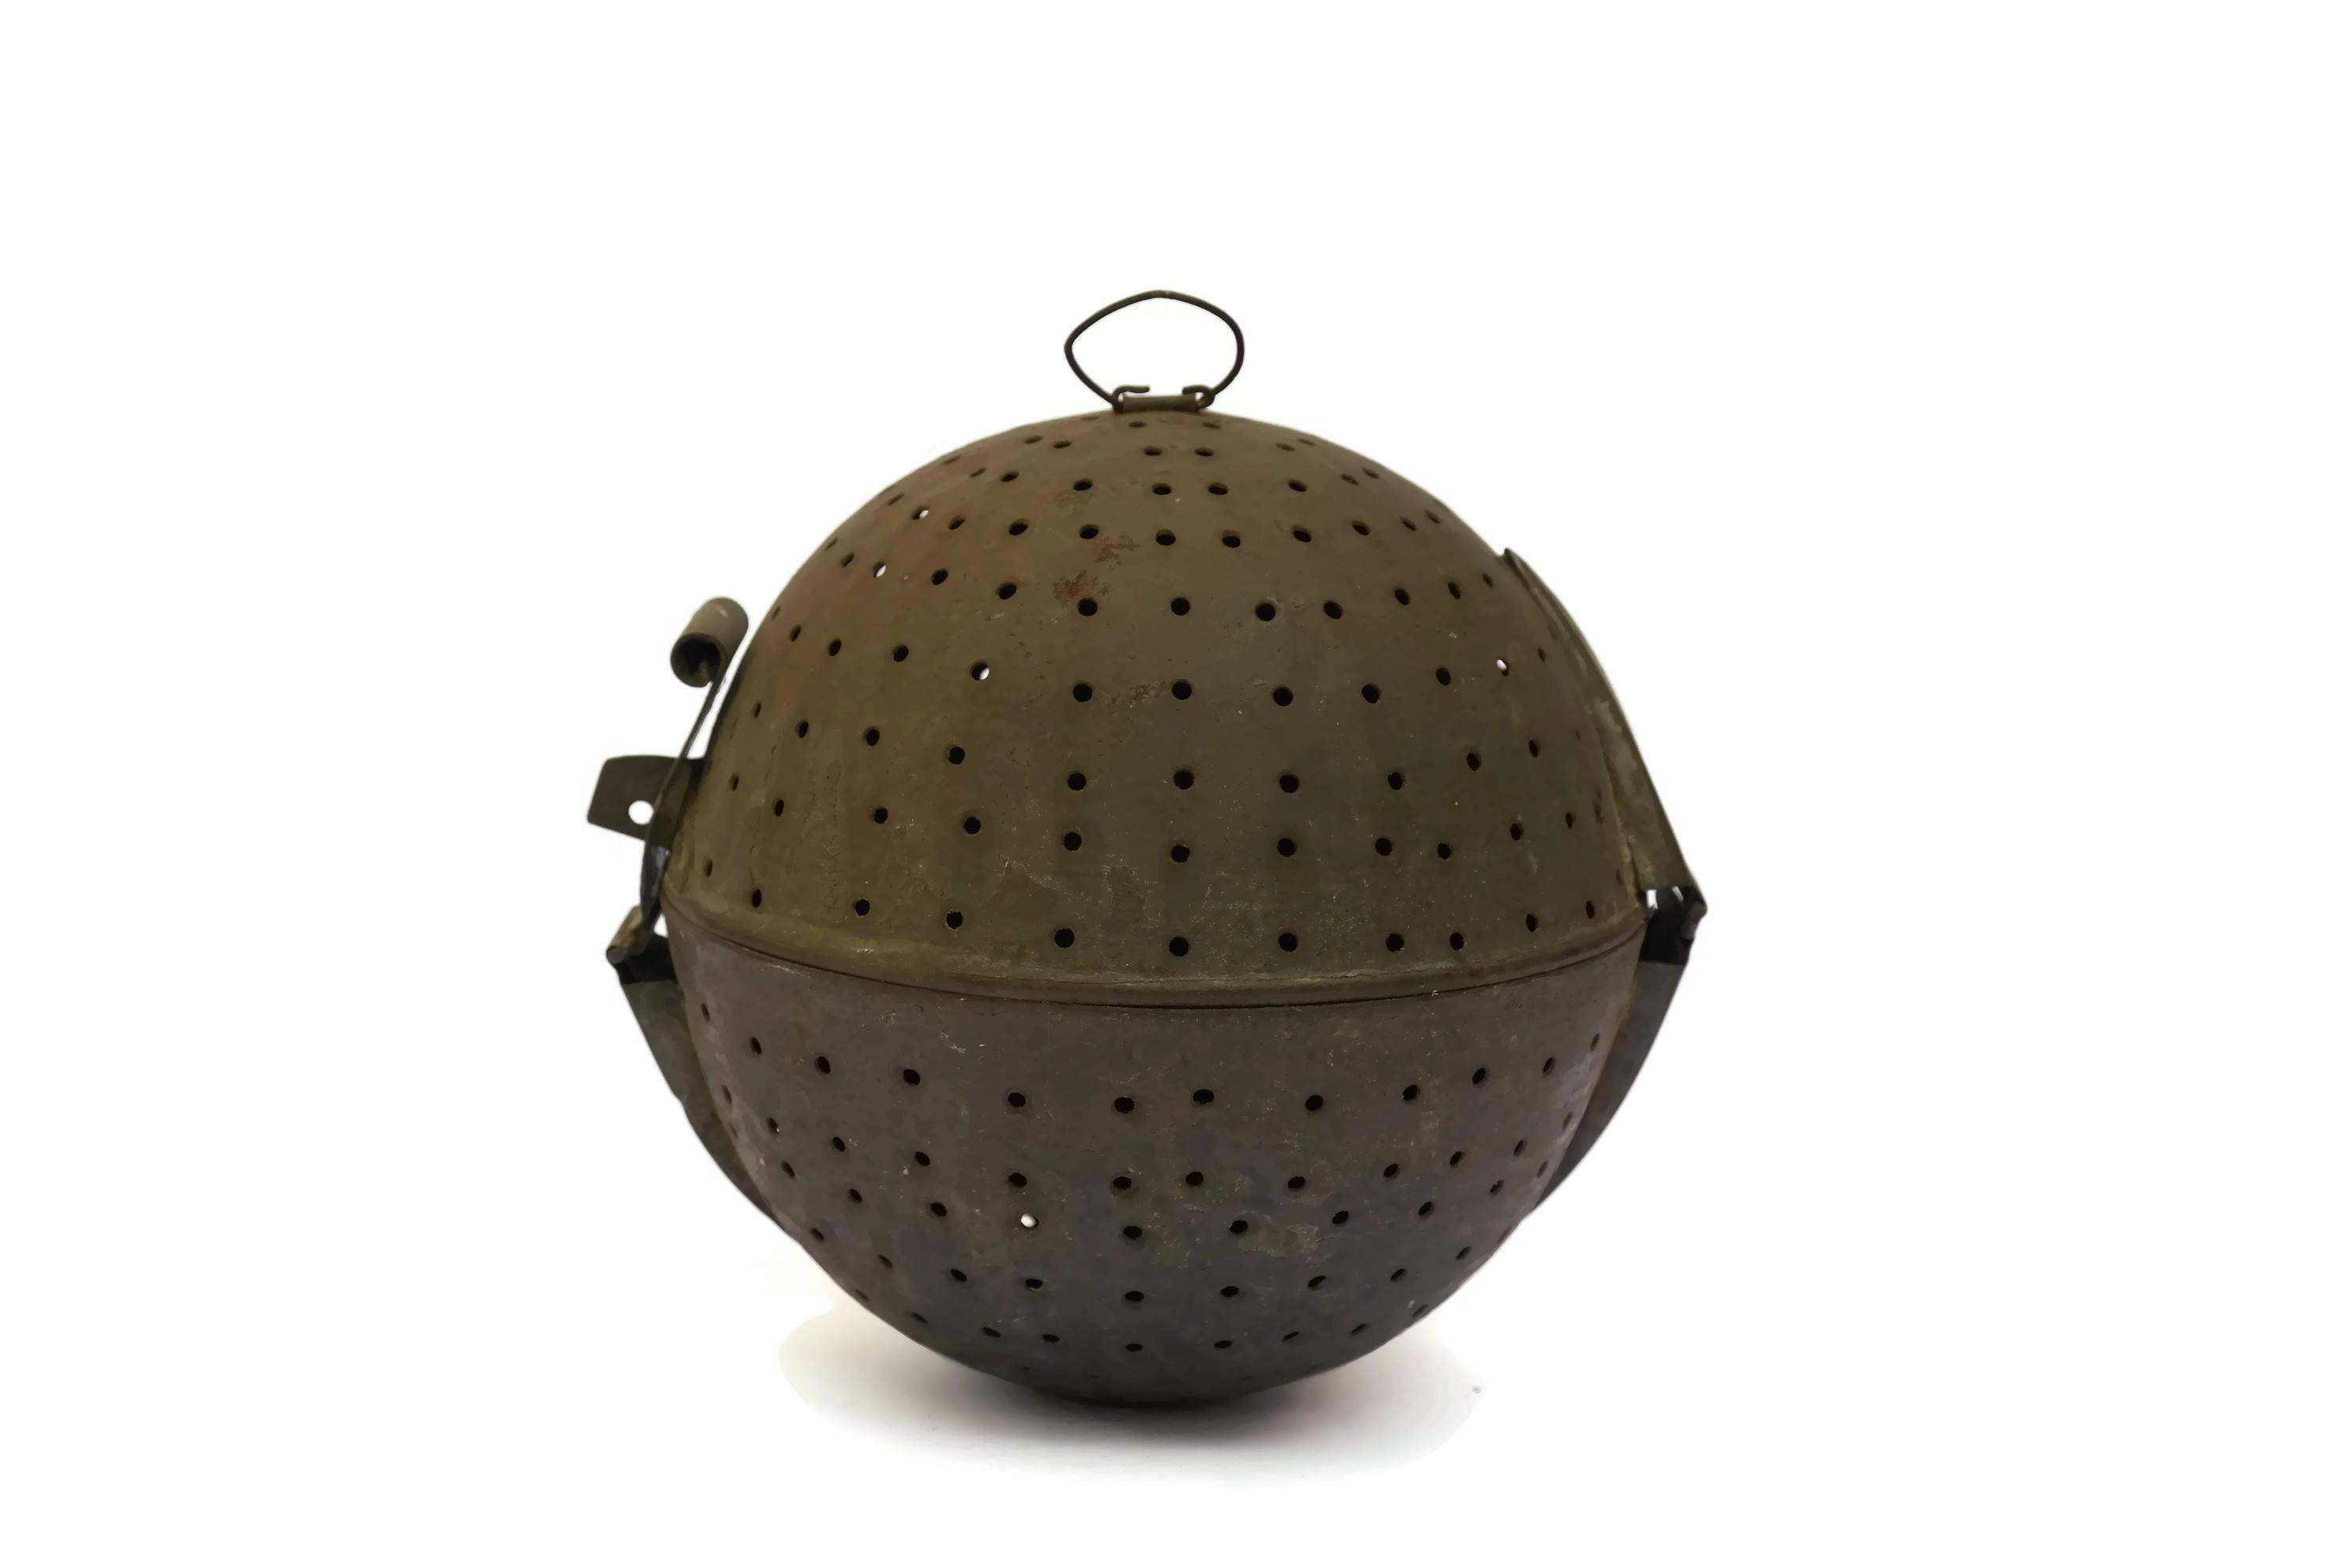 French Antique Rice Boiler Cooking Ball Metal Tea Leaves